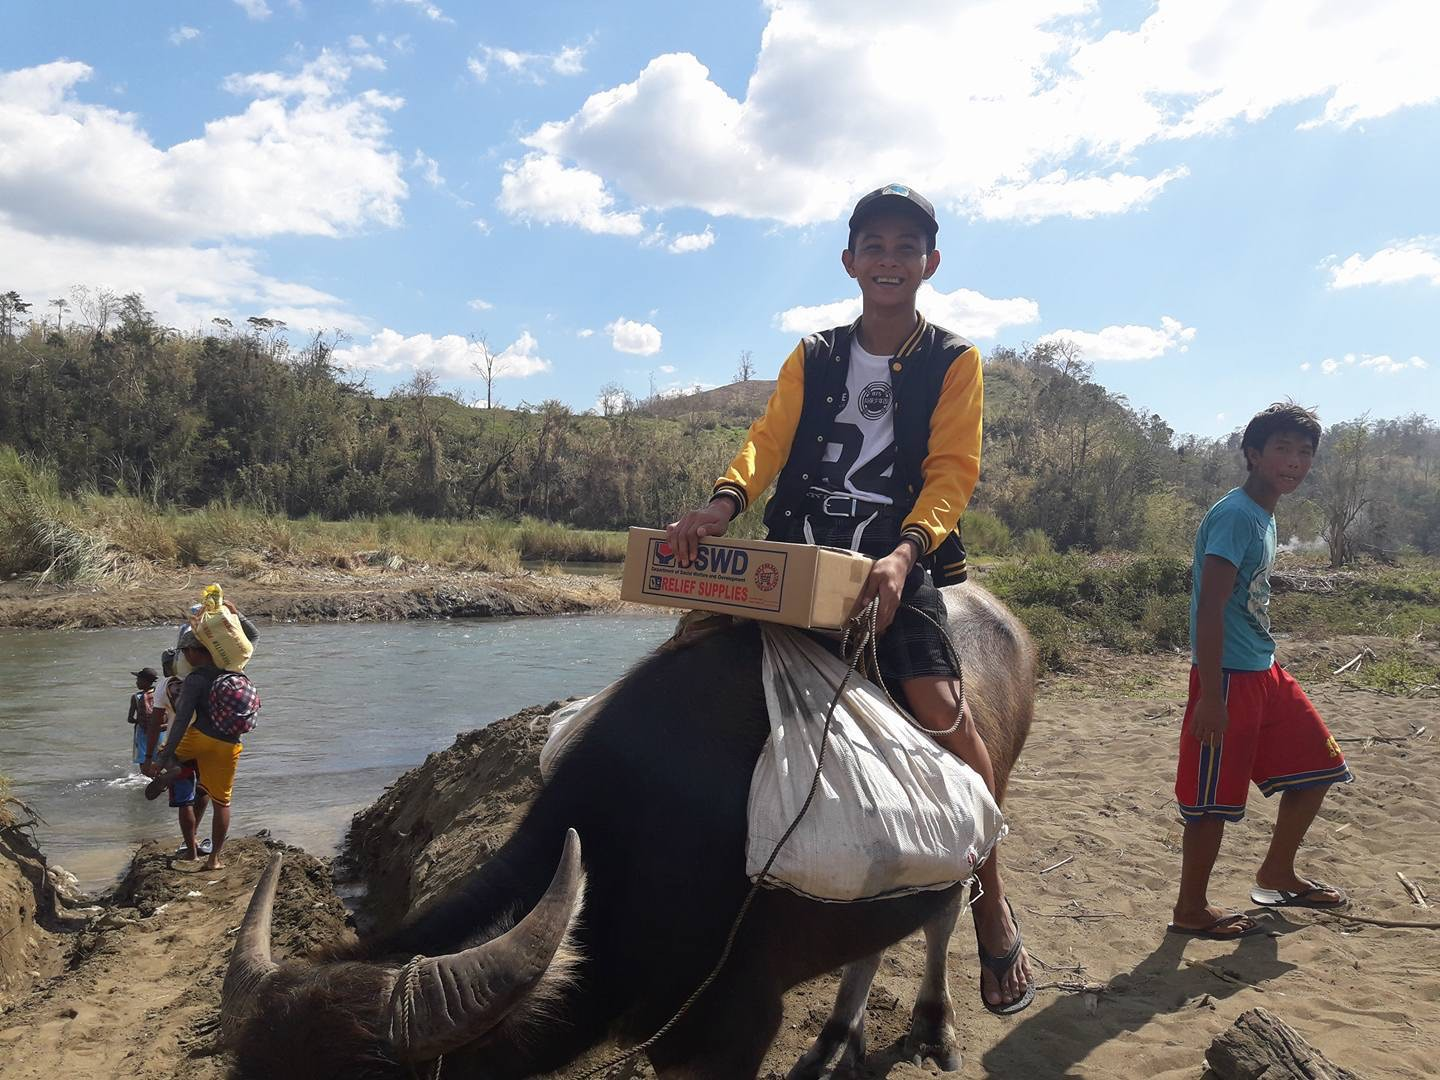 REACHING RIZAL. A carabao is used to transport relief goods to the remote town of Rizal in Kalinga province.